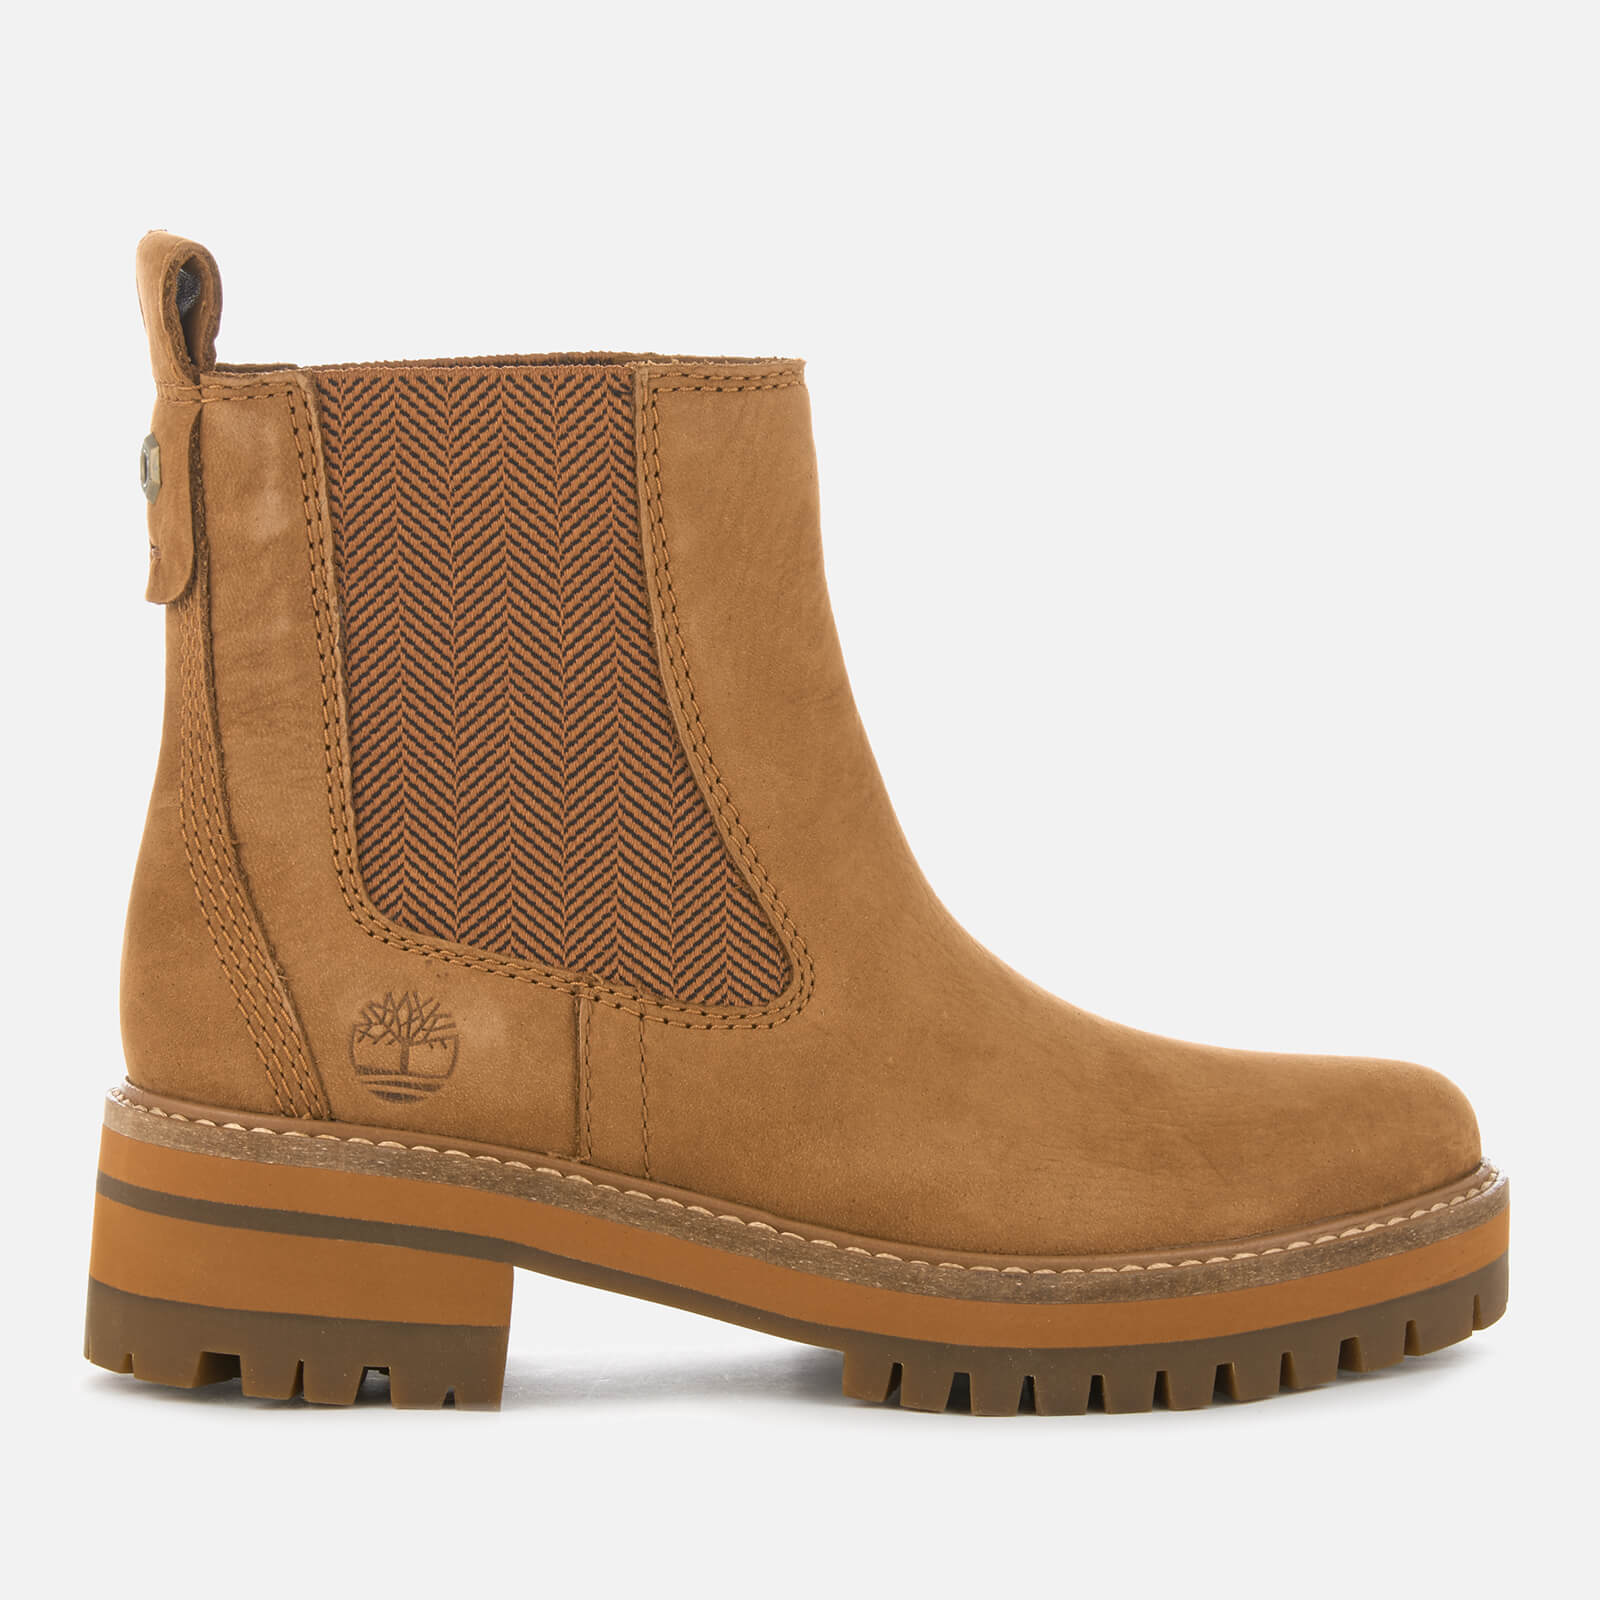 1ea39b4103e56 Timberland Women's Courmayeur Valley Chelsea Boots - Sundance | FREE UK  Delivery | Allsole